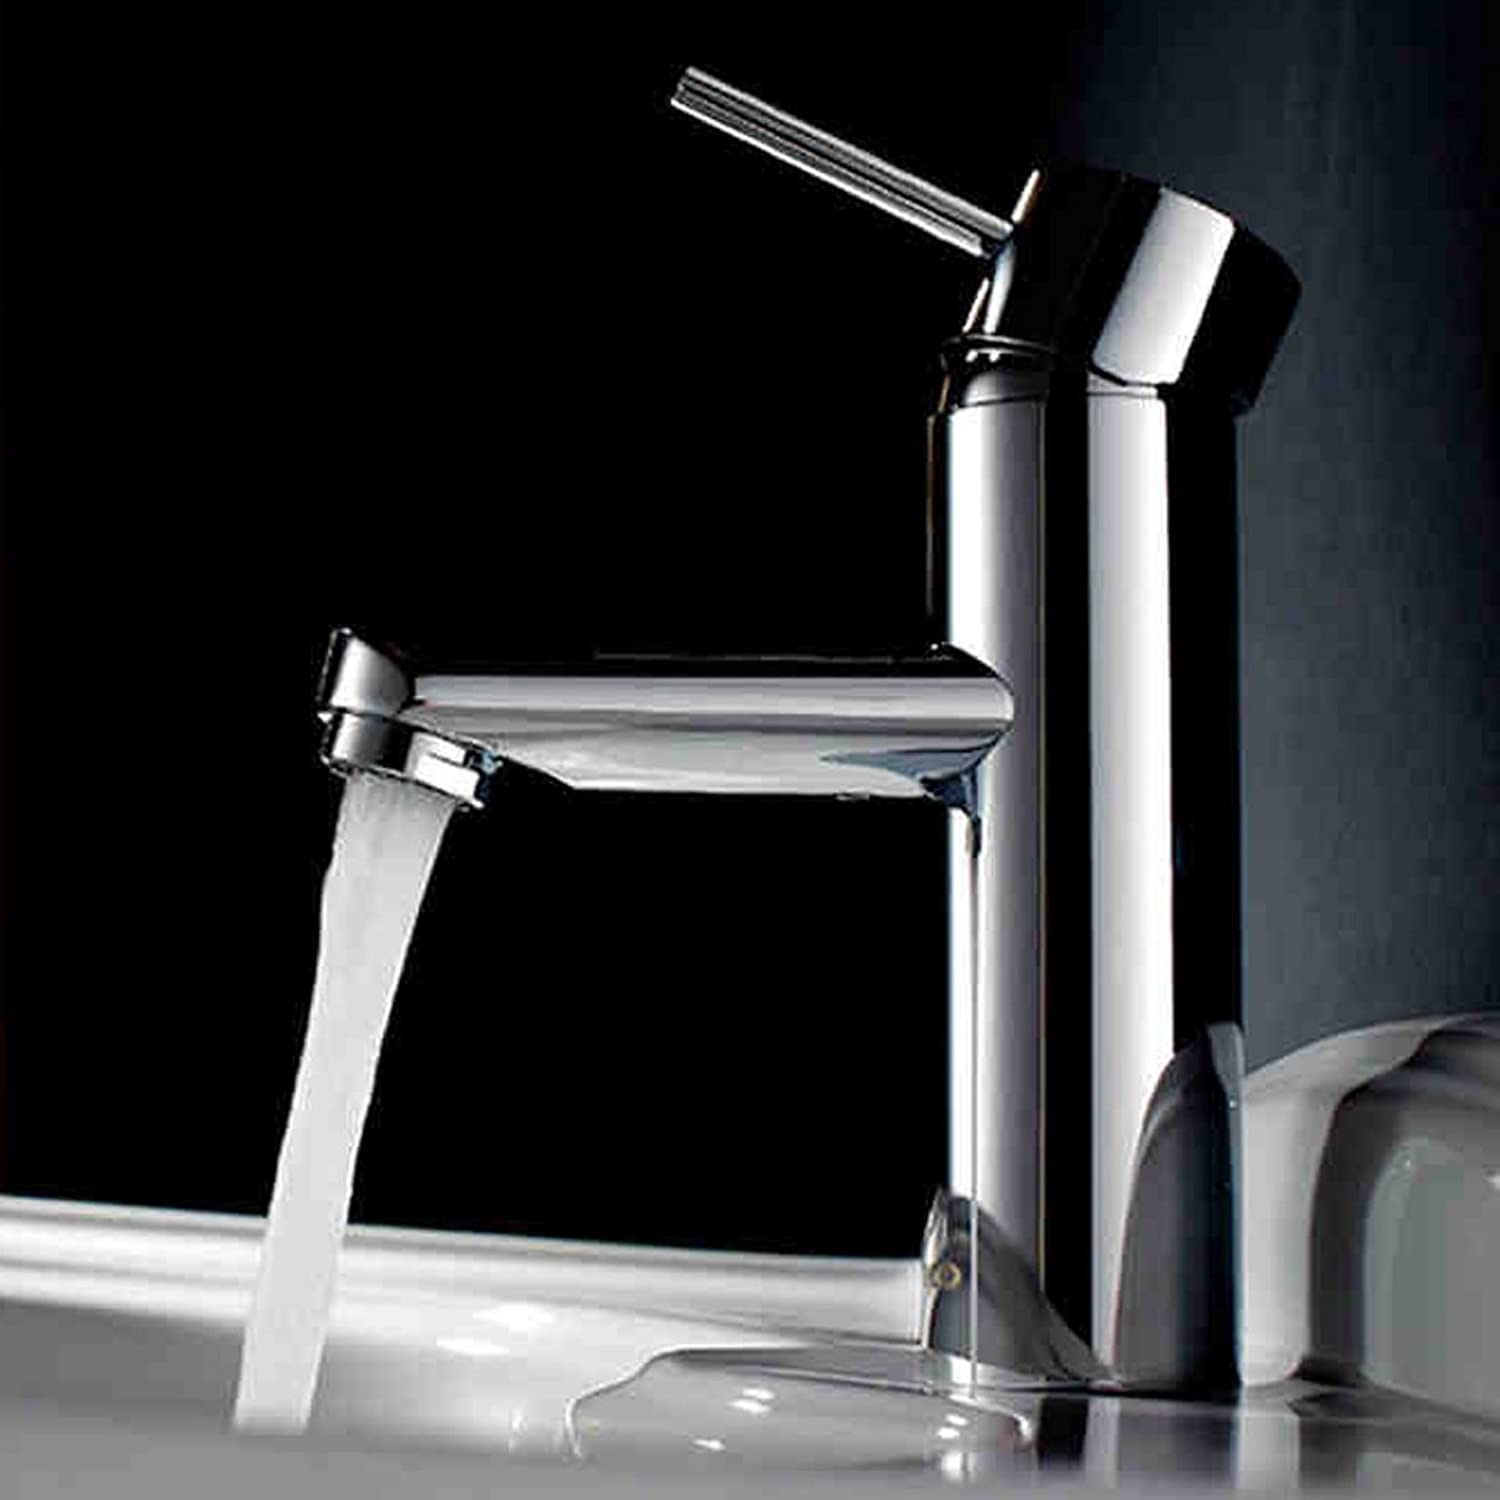 All Copper Hot And Cold Basin Water Tap Bathroom Taipen Faucet Bathroom Counter Wash Basin Basin Faucet